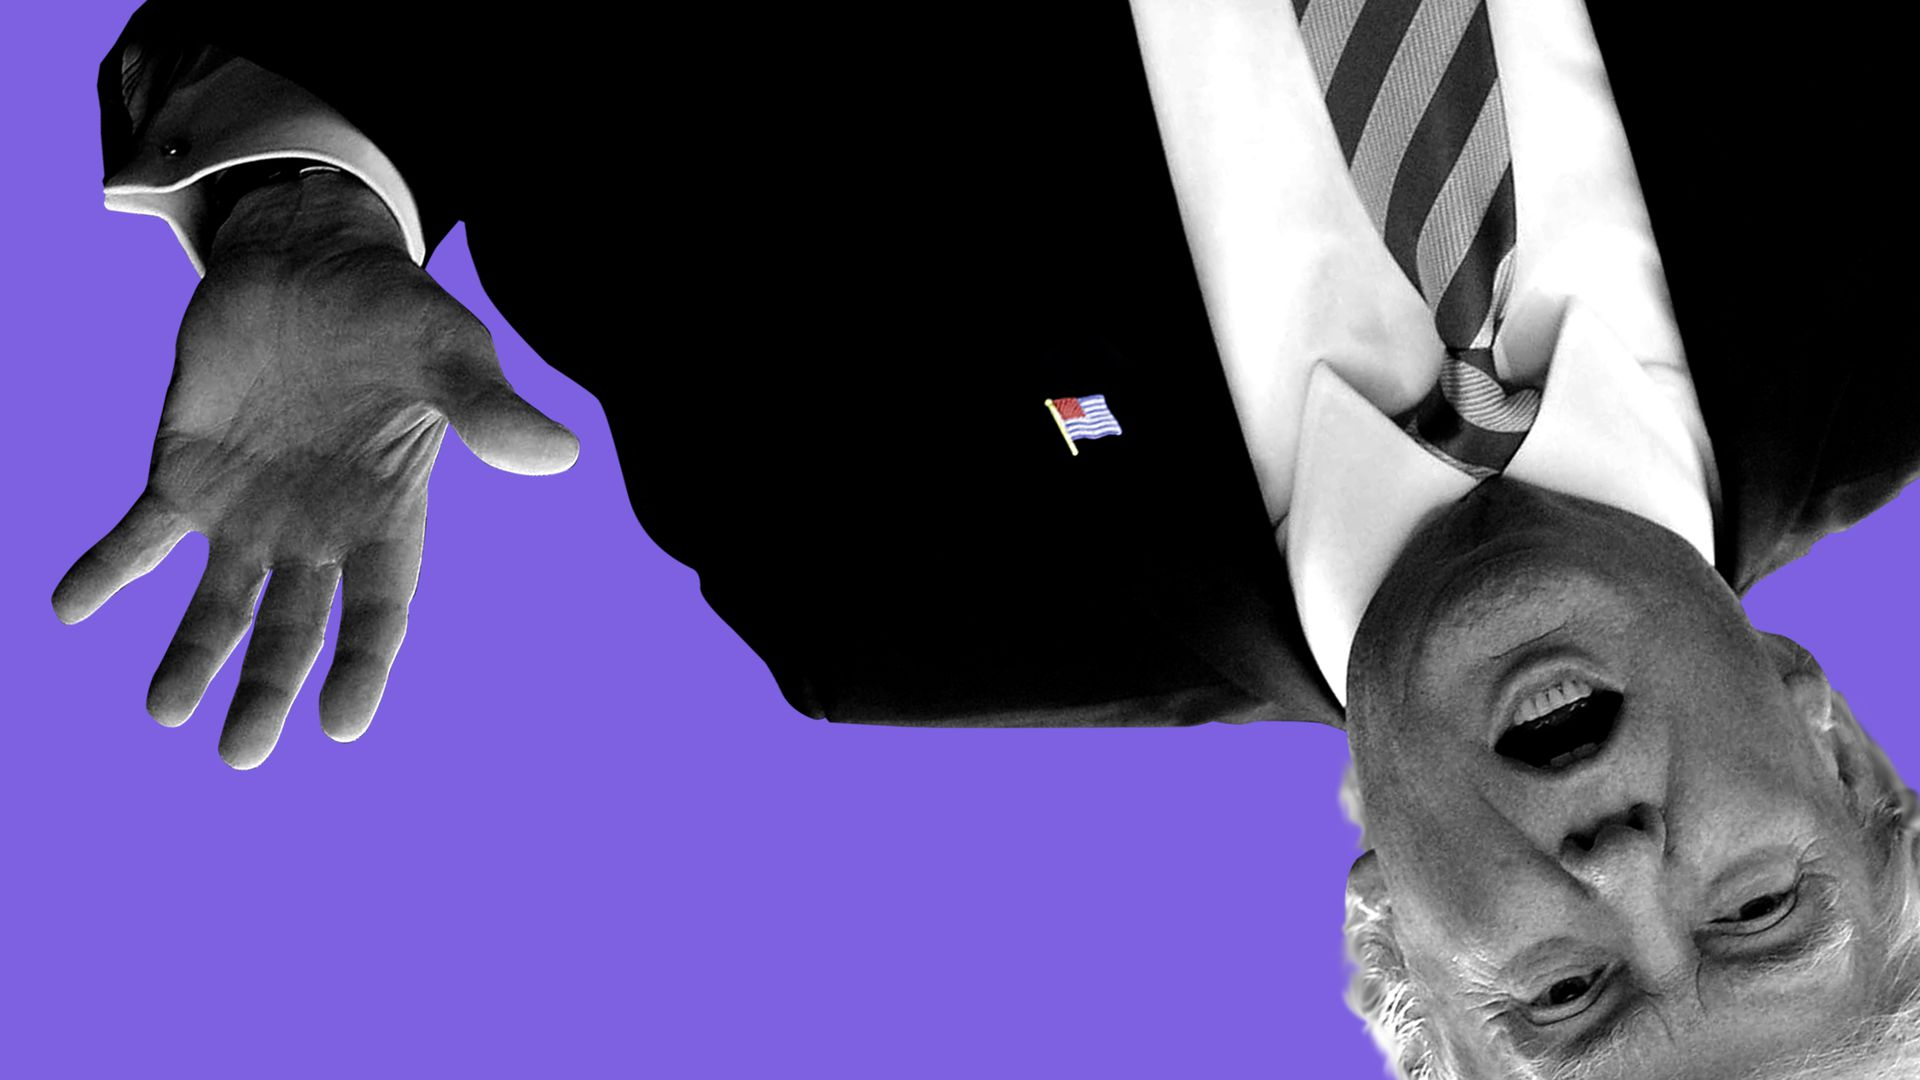 An illustration of President Trump in black and white, upside down on a purple background.